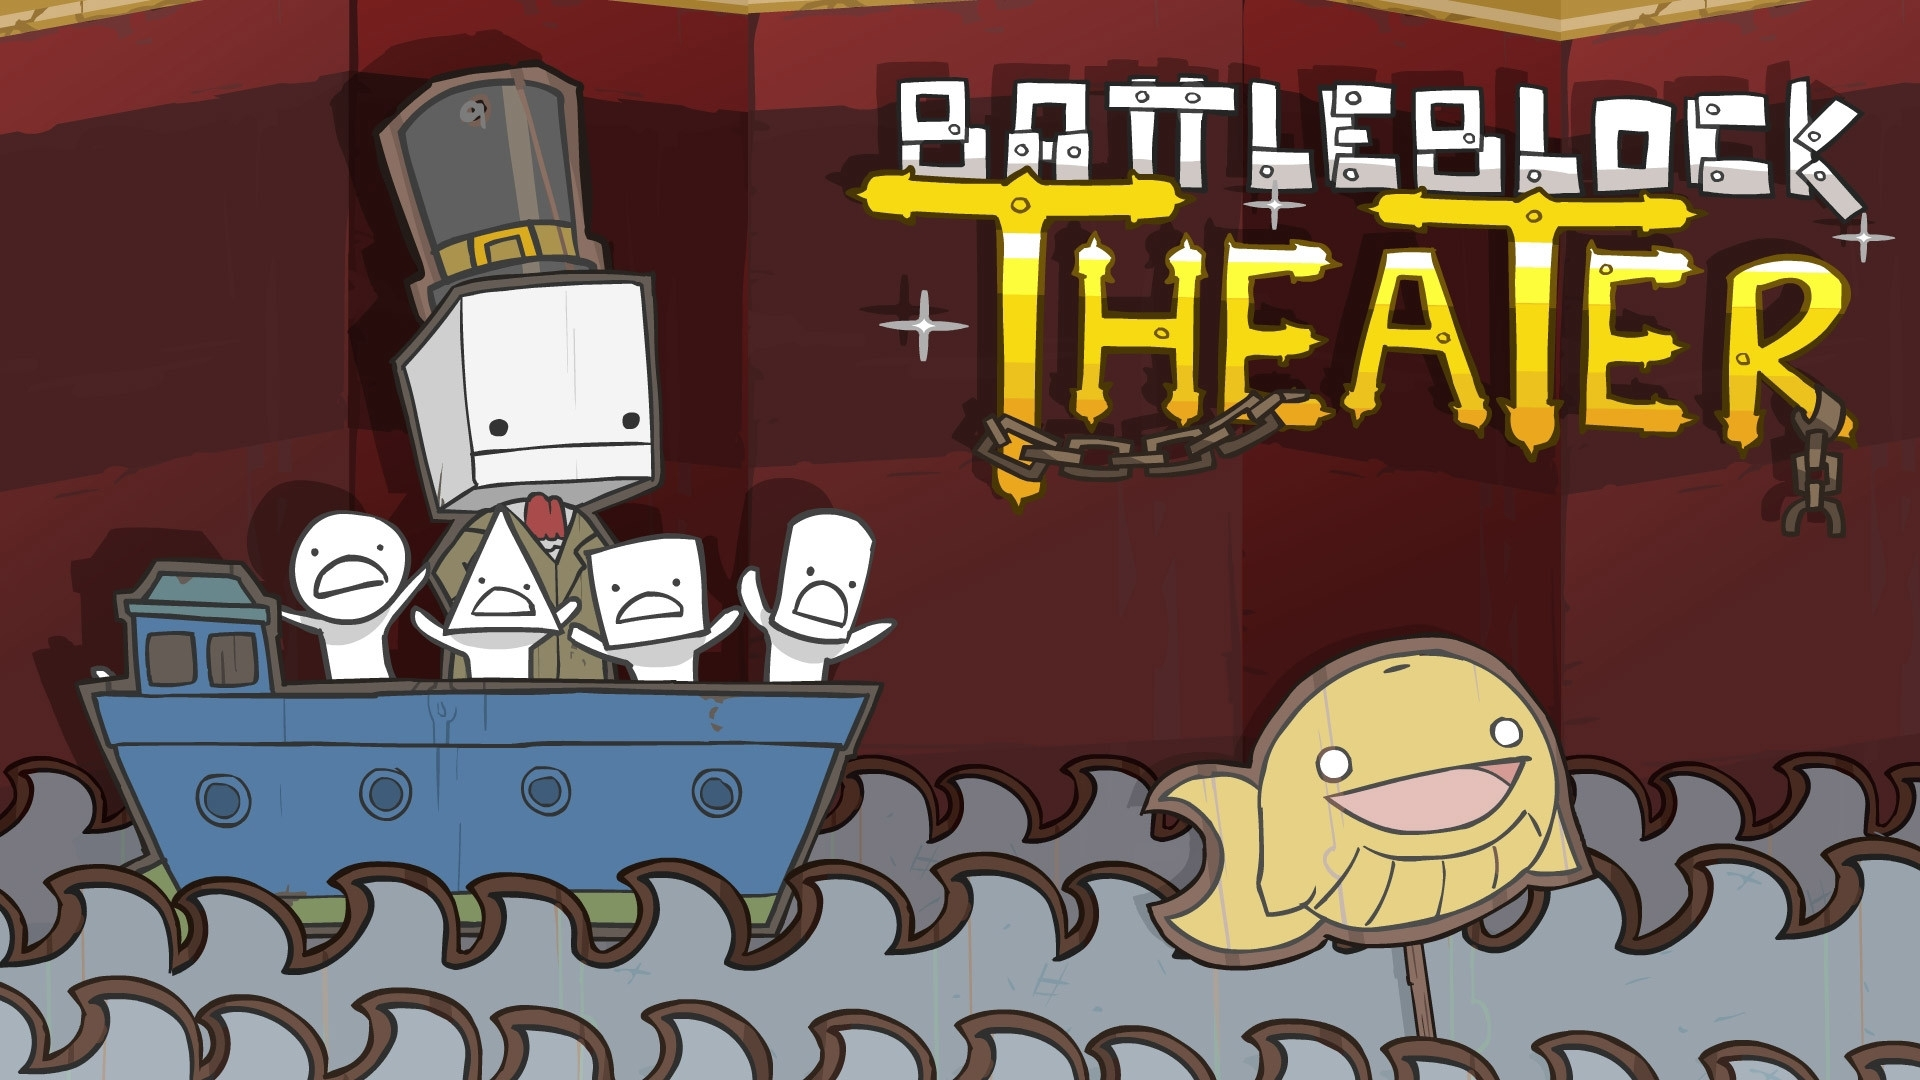 battleblock theater wallpaper (79+ images)